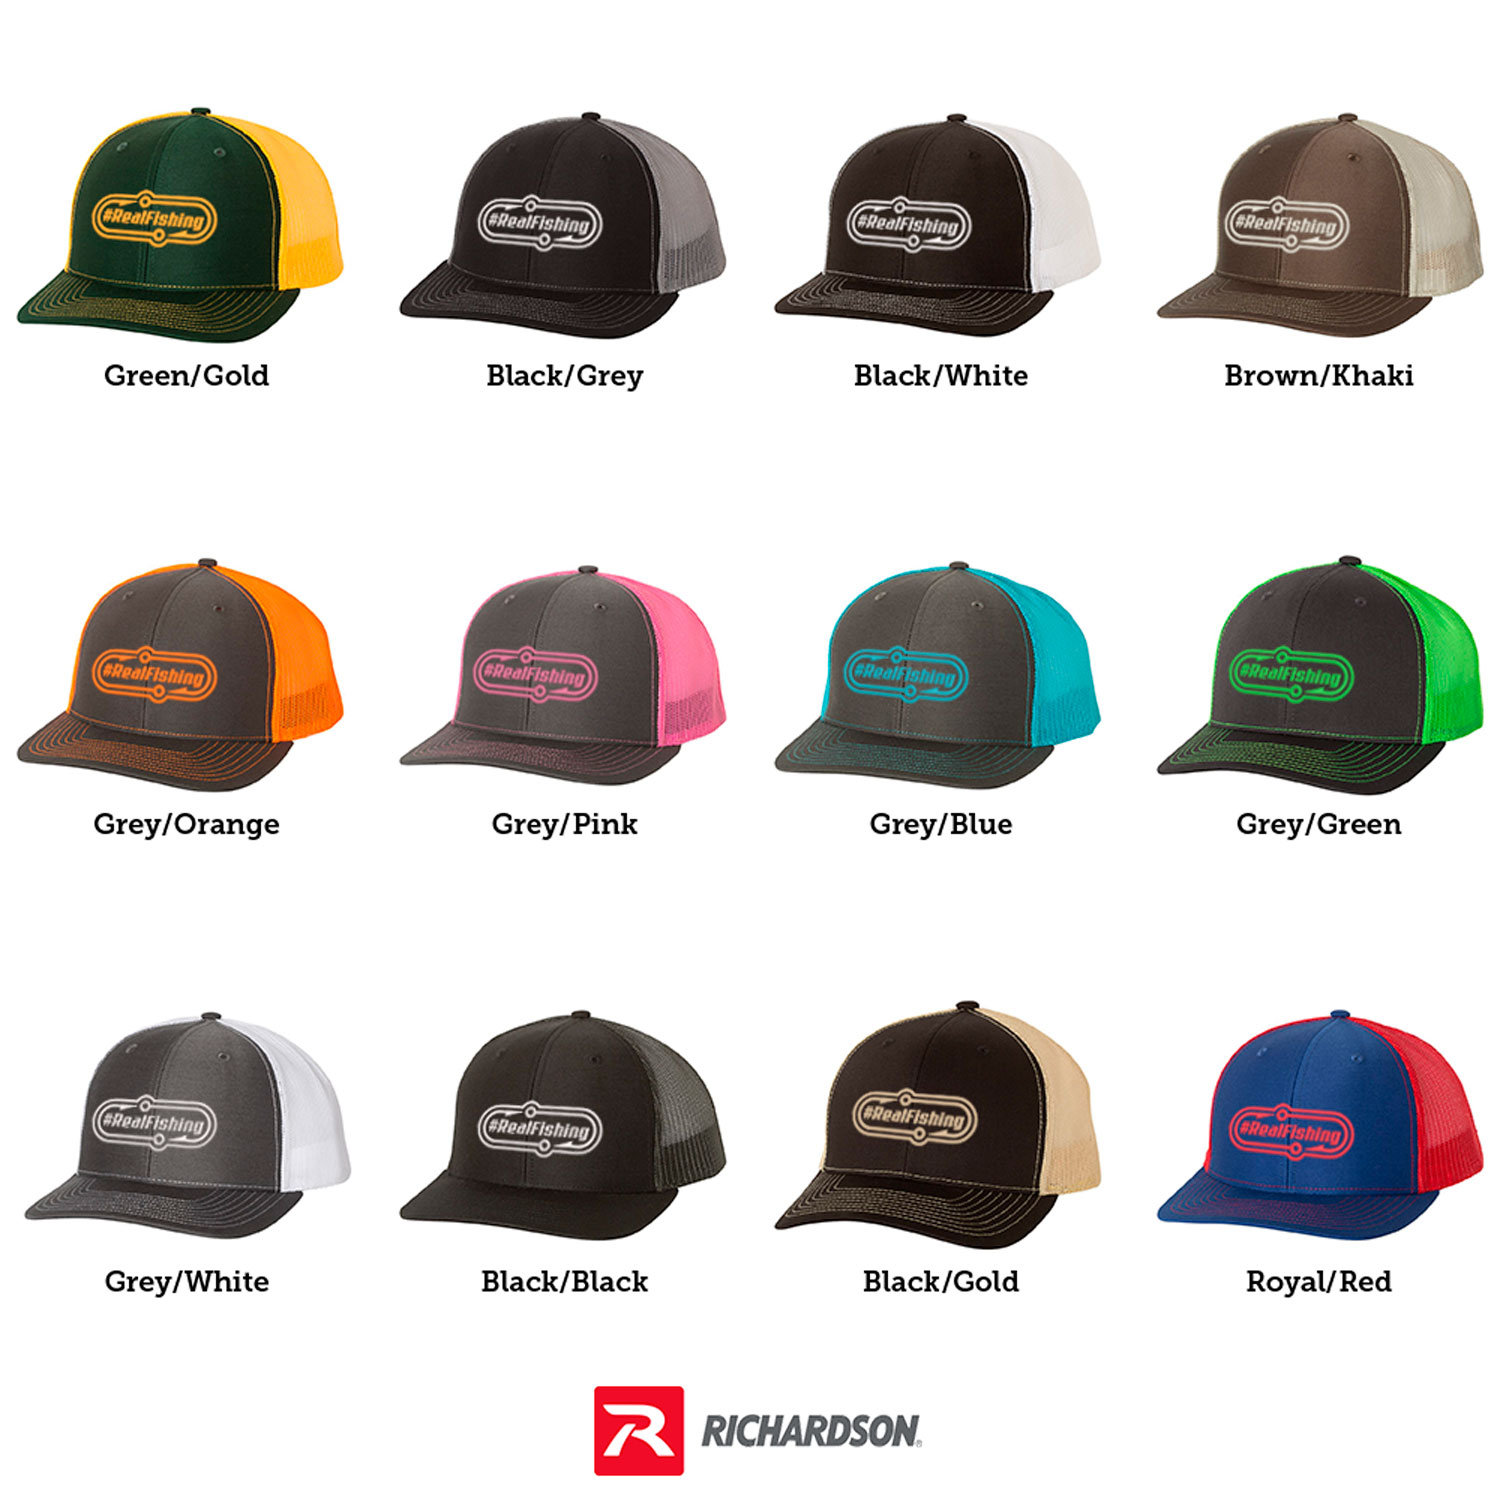 One Size Fits All and High Quality Brand Hats  Premium Richardson Brand graphin' Caps and Hats  Richardson brand structured trucker hats: 65/35 polyester/cotton 100% polyester mesh back Structured, mid-profile, six-panel Pre-curved contrast stitched visor Snapback closur